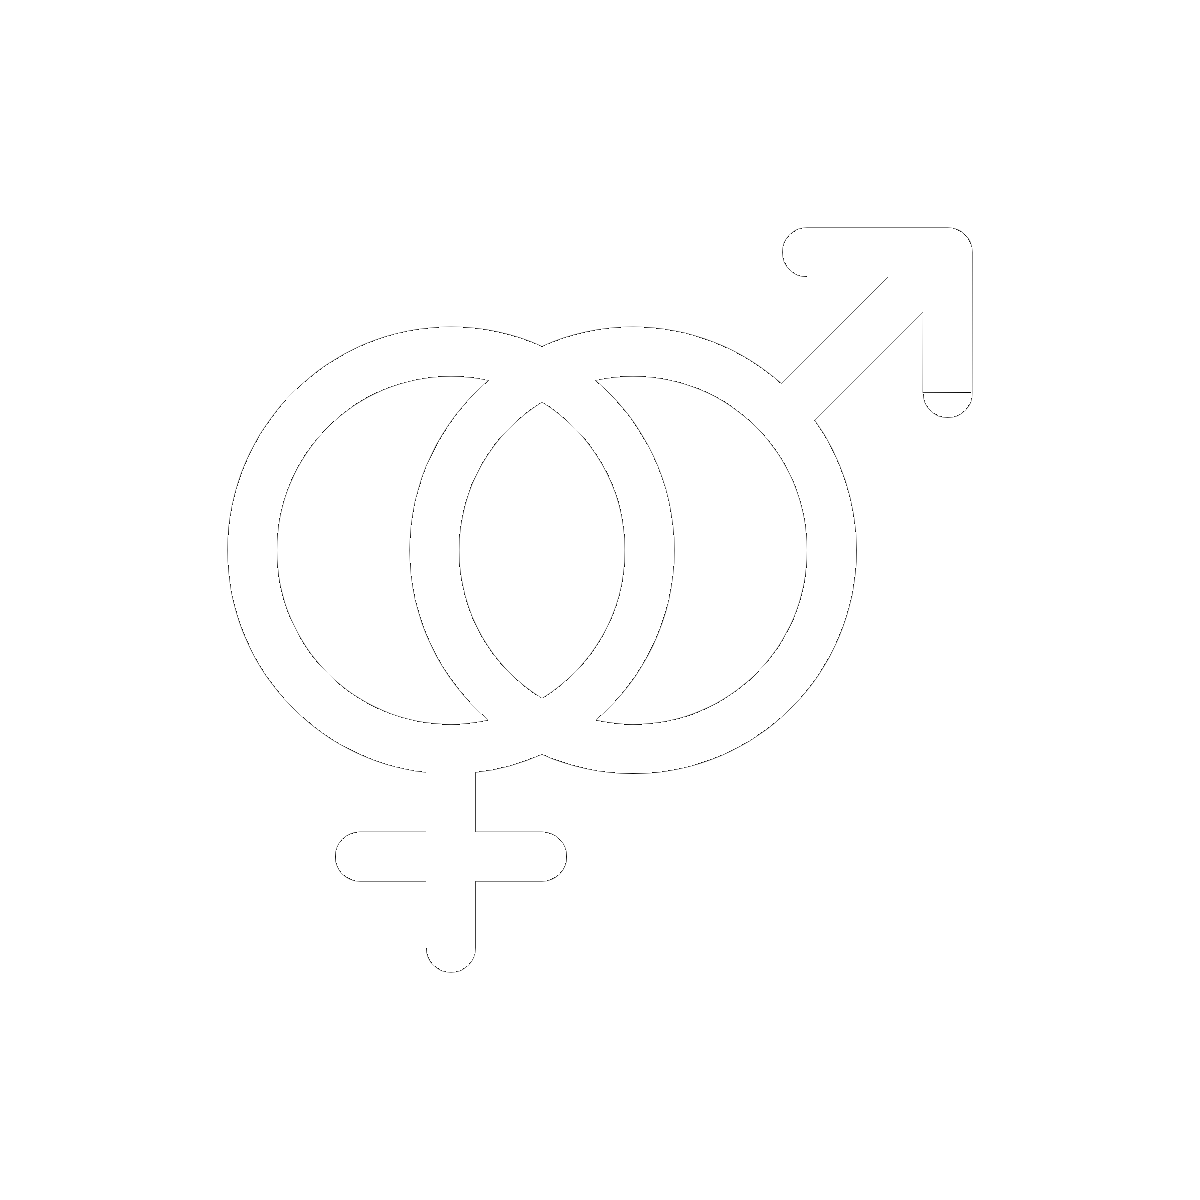 Theme Gender and Oppression